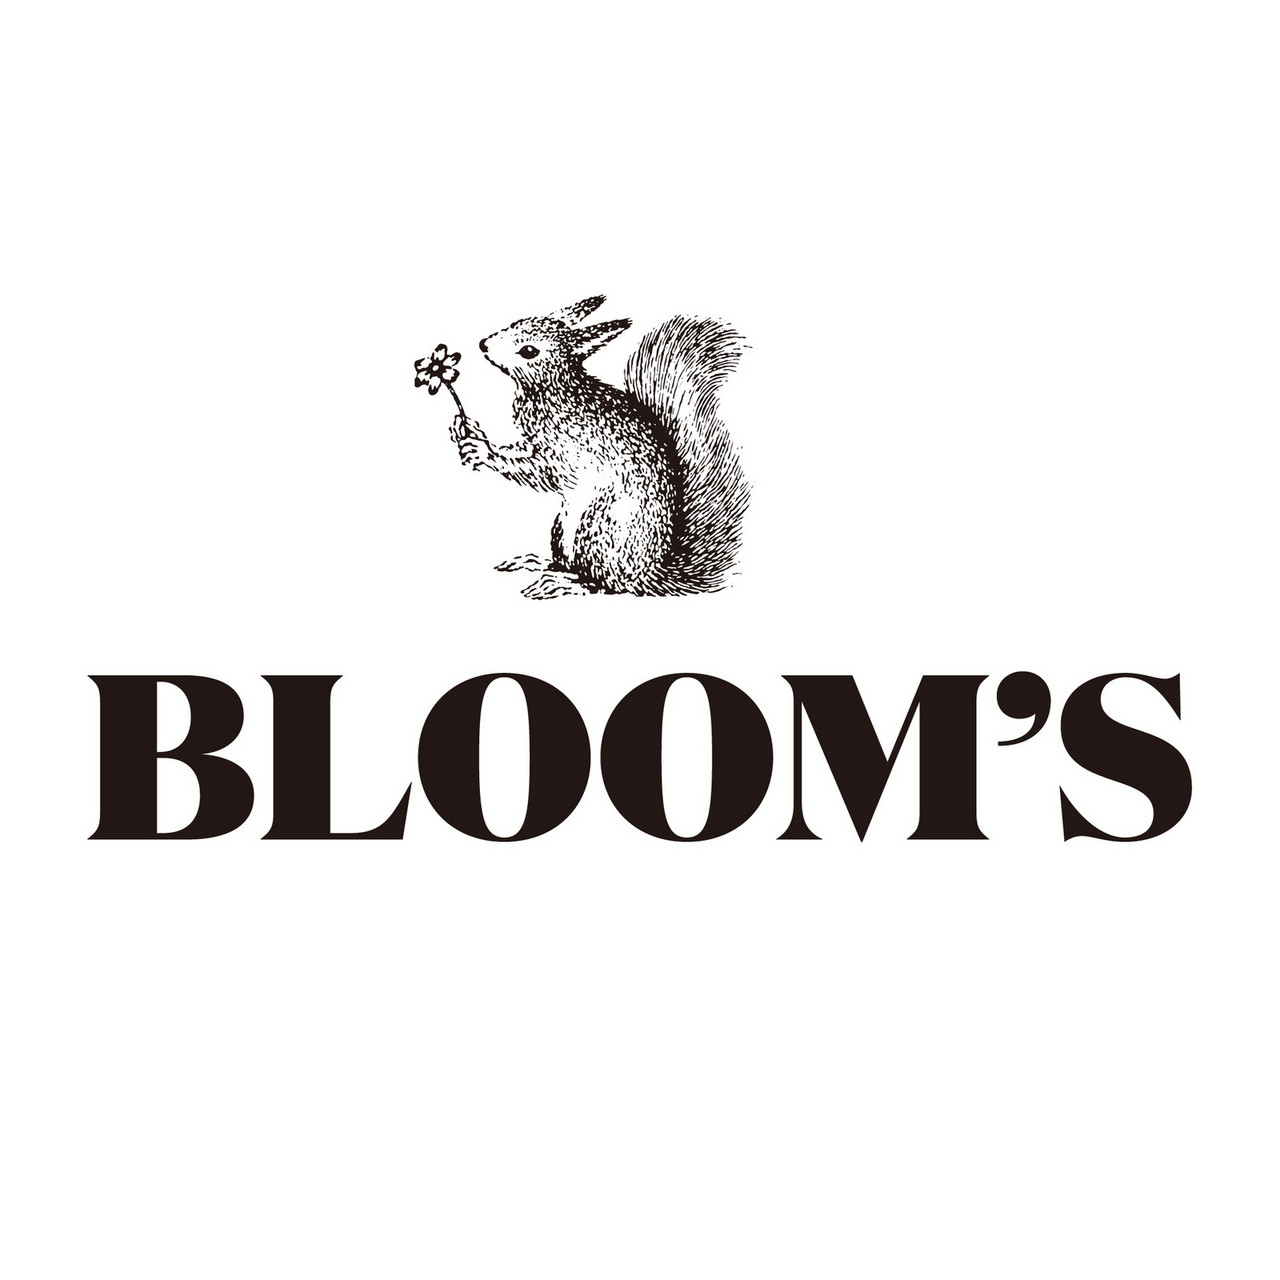 Blooms01